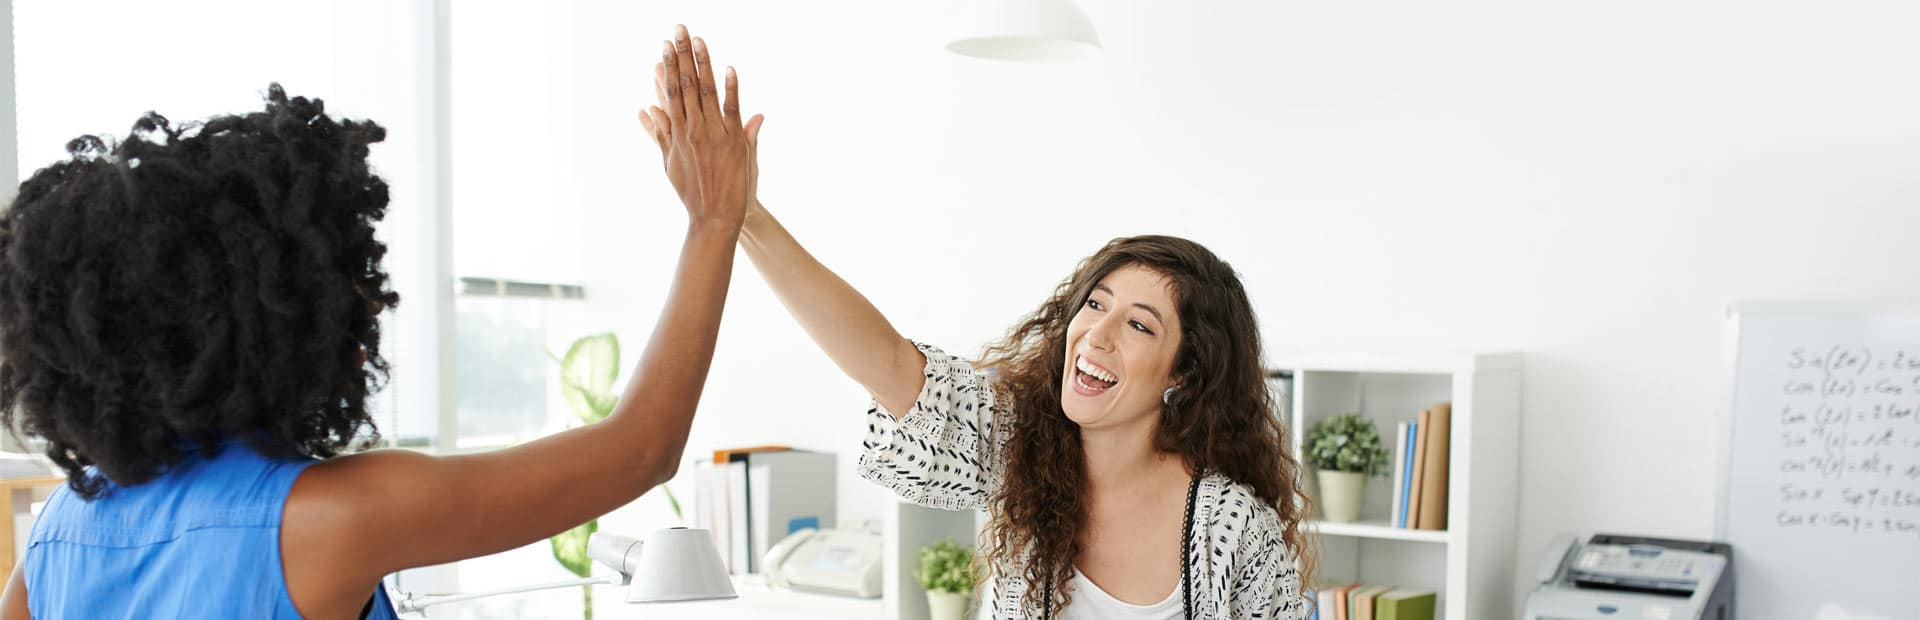 Two female employees high-fiving and celebrating